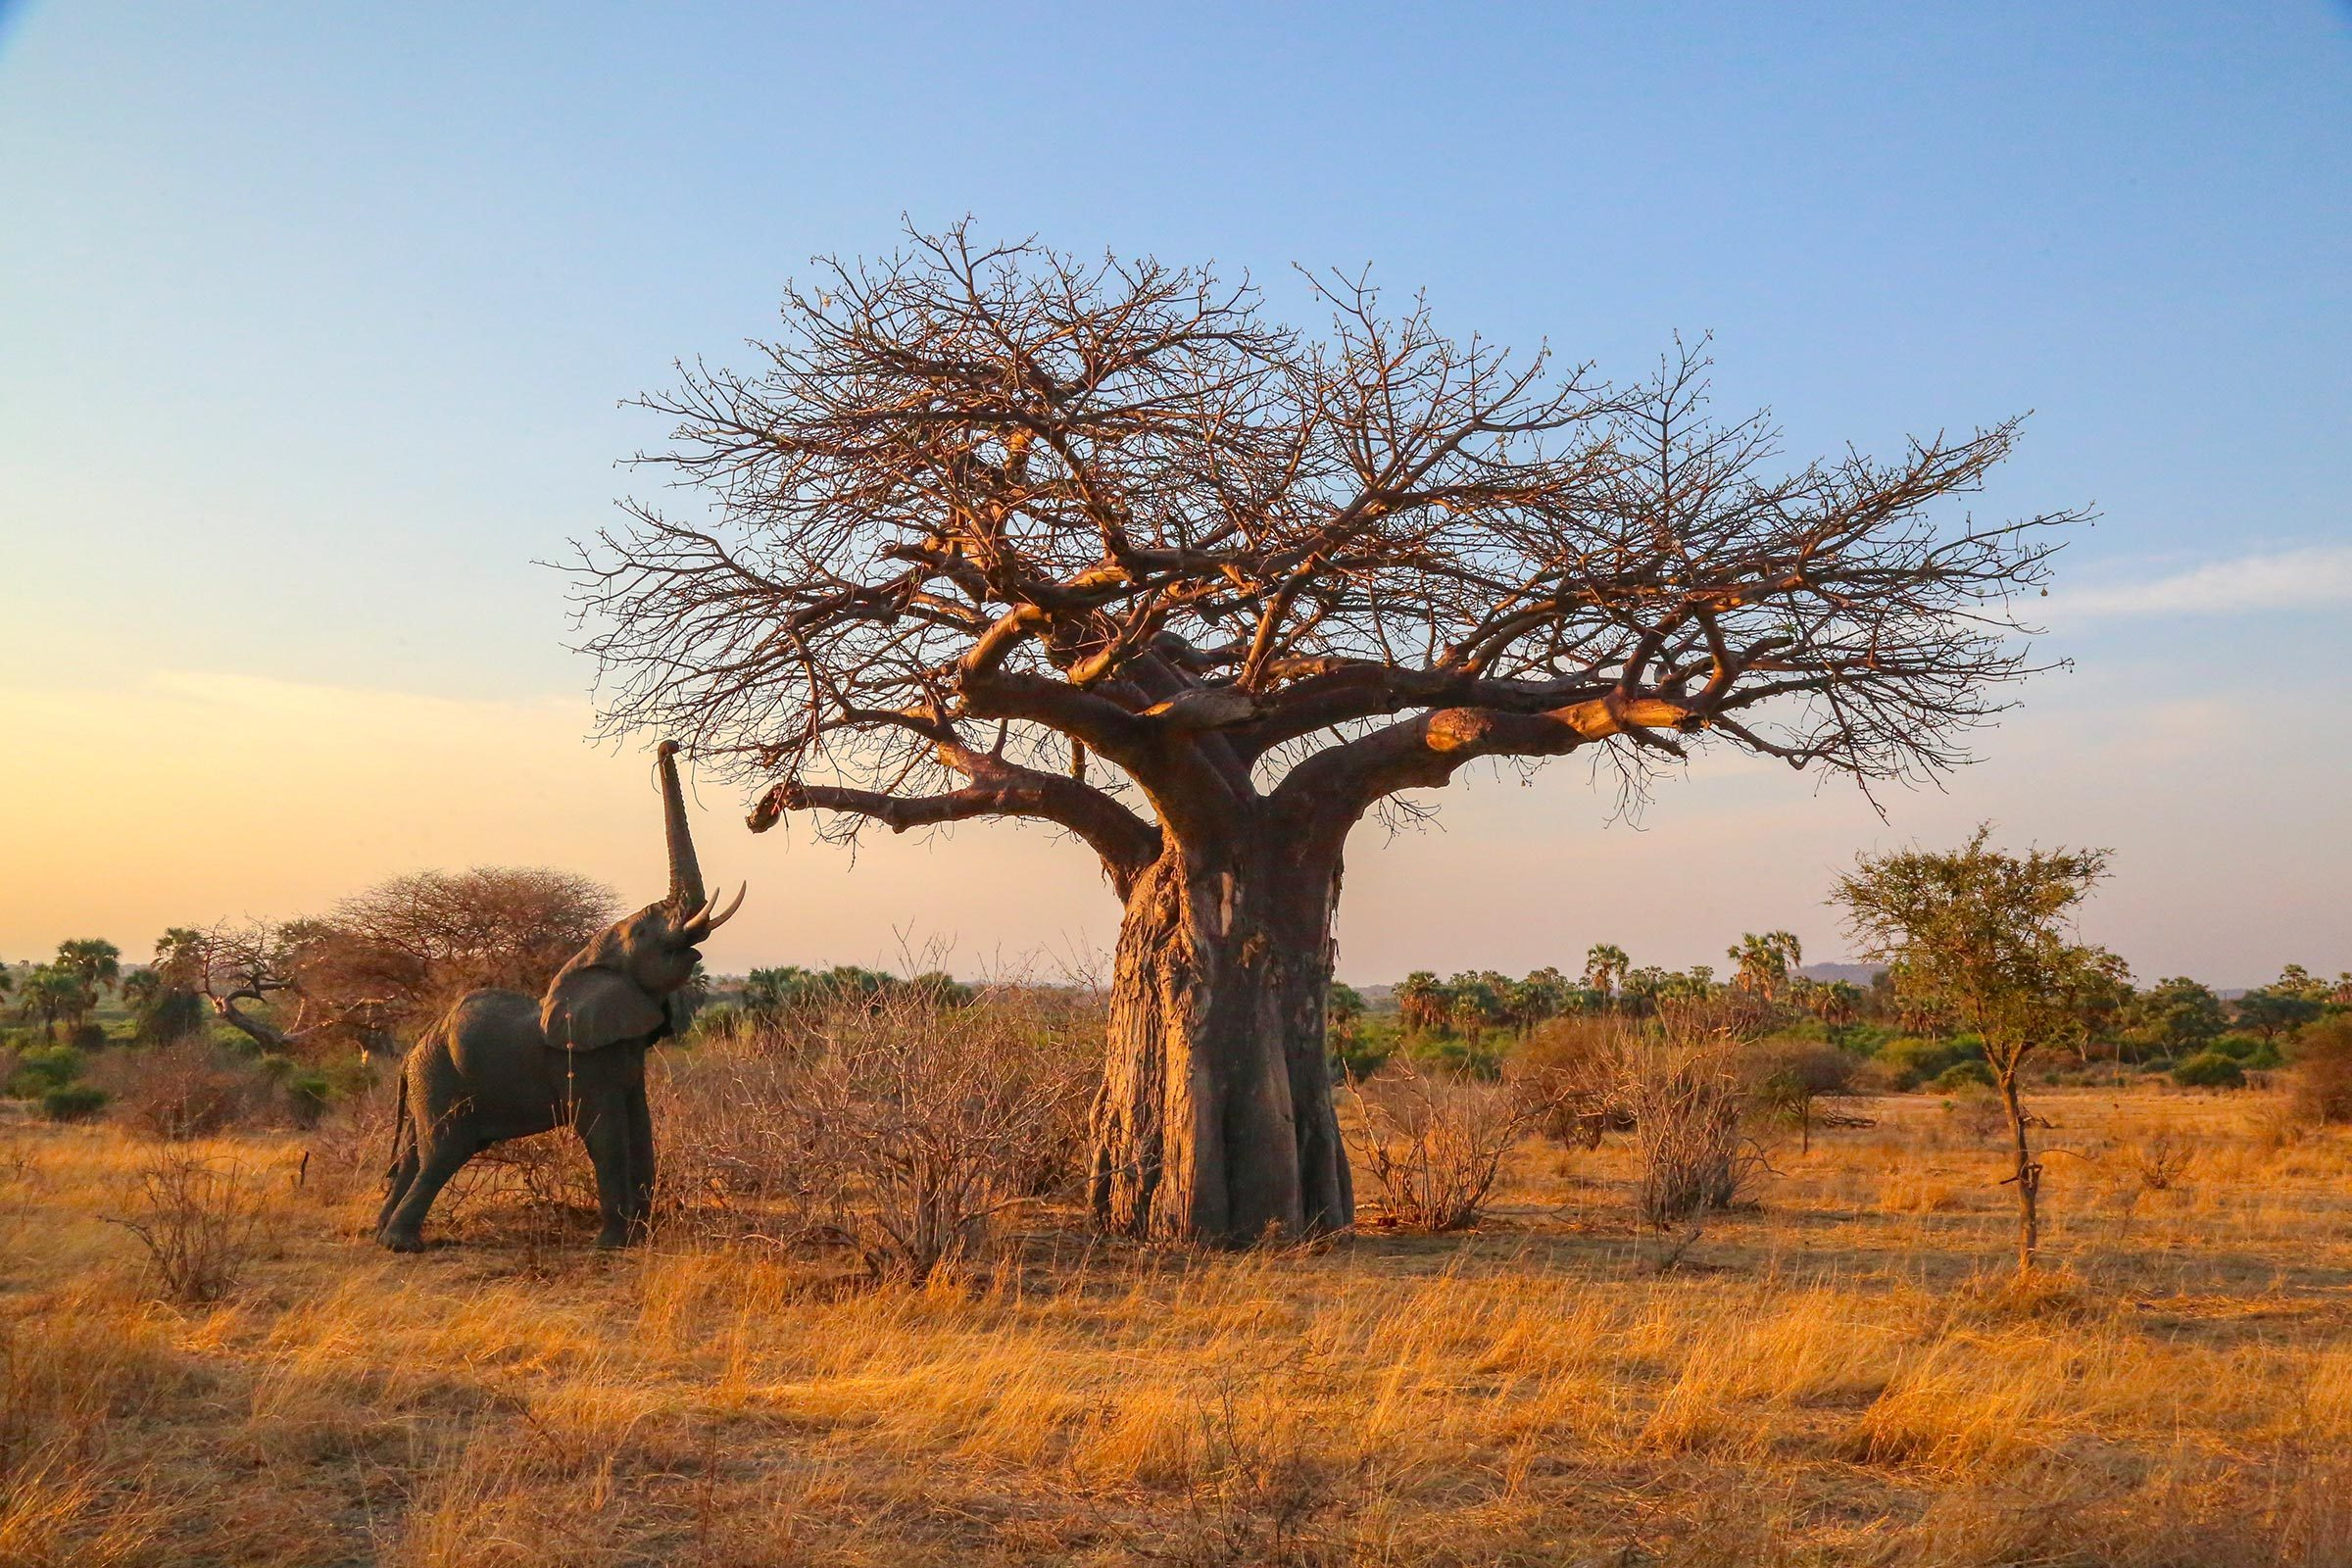 elephant reaching for high branches